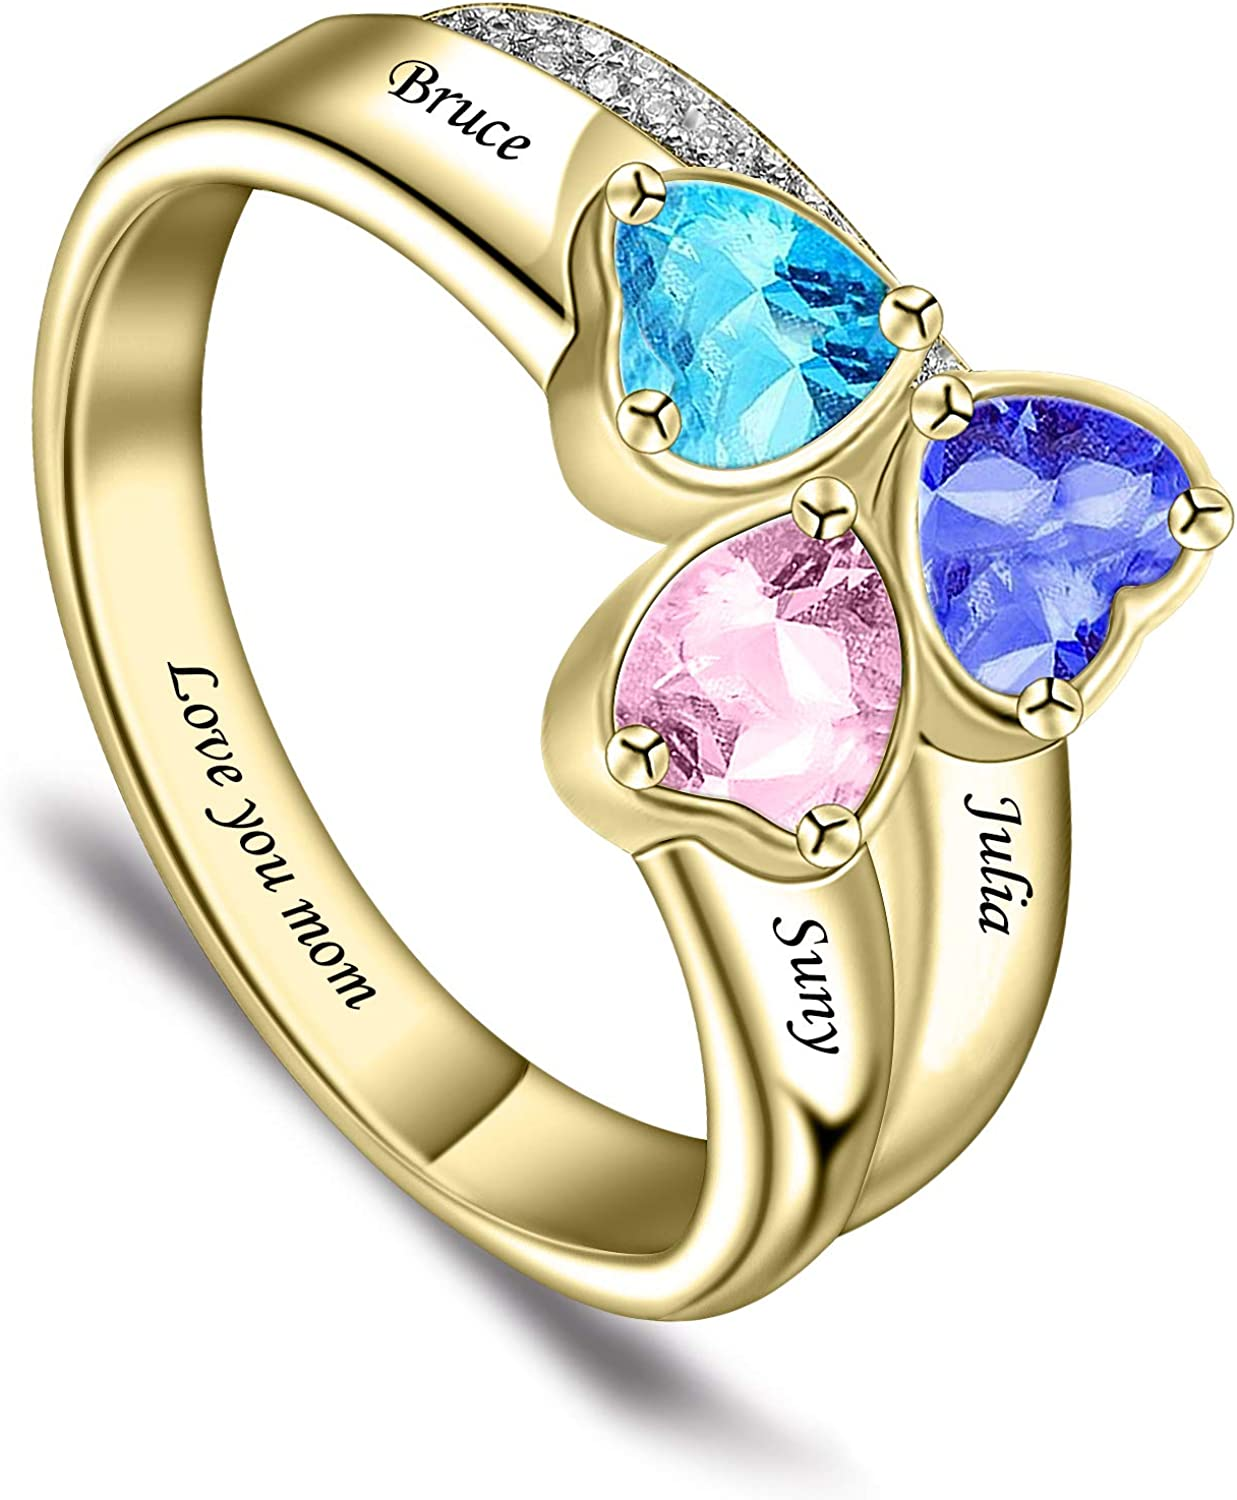 BAUMA AUTO Mothers Ring Personalized S925 Mothers Rings with 3 Simulated Birthstones for Grandmother Mother Meaningful Anniversary Rings for Women Wife